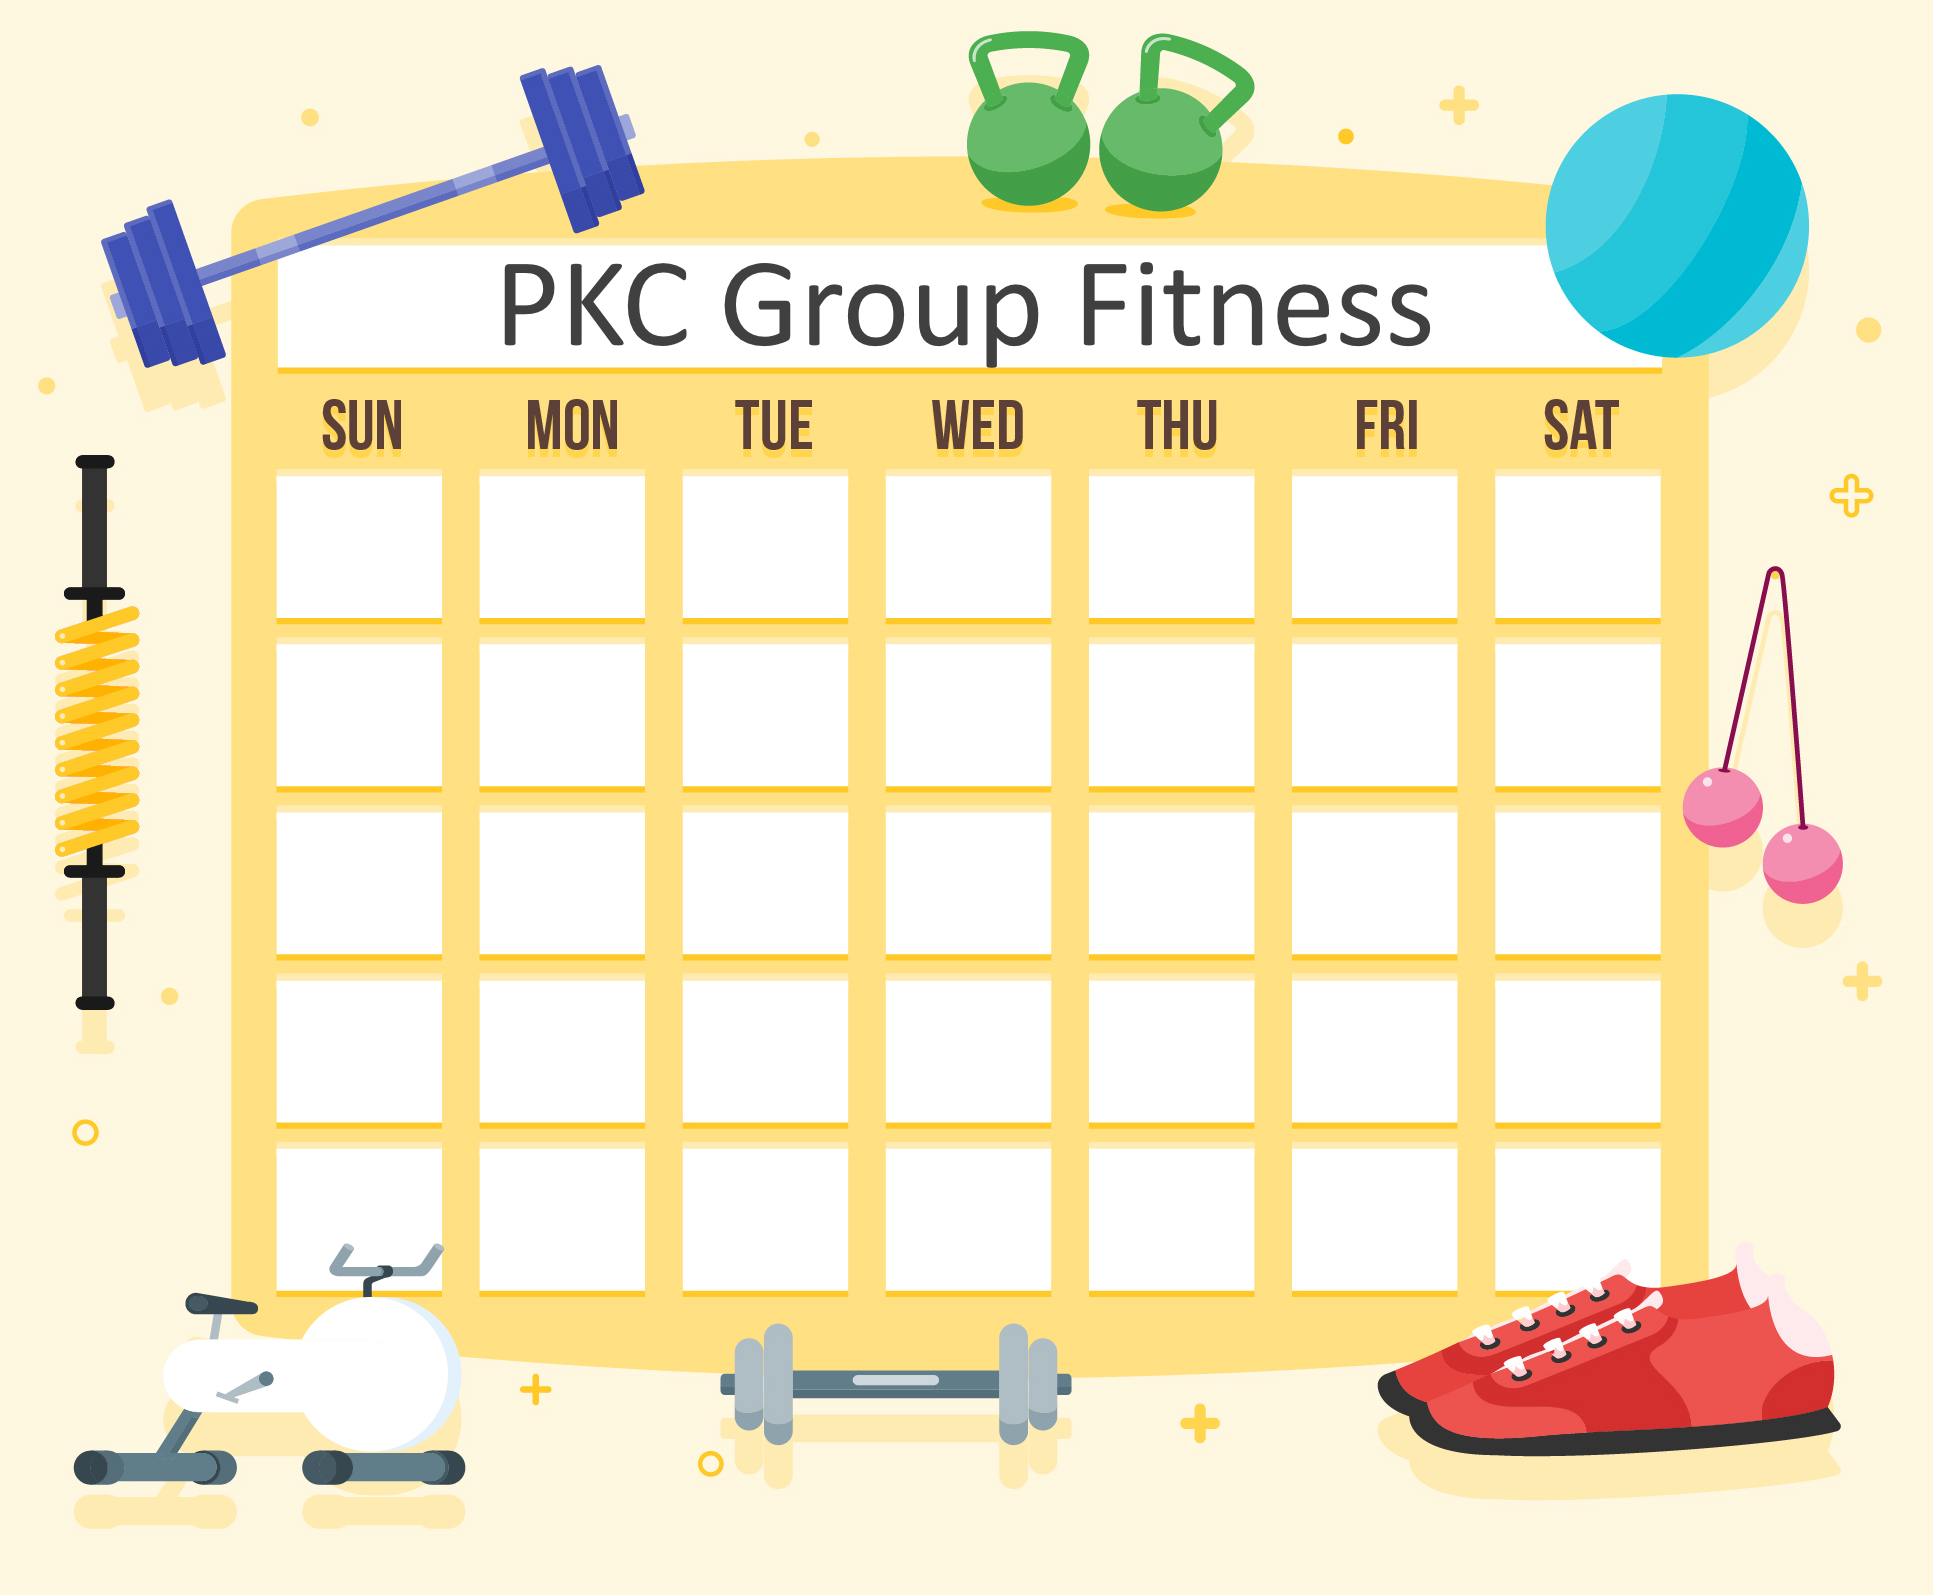 Image of Fitness Calendar